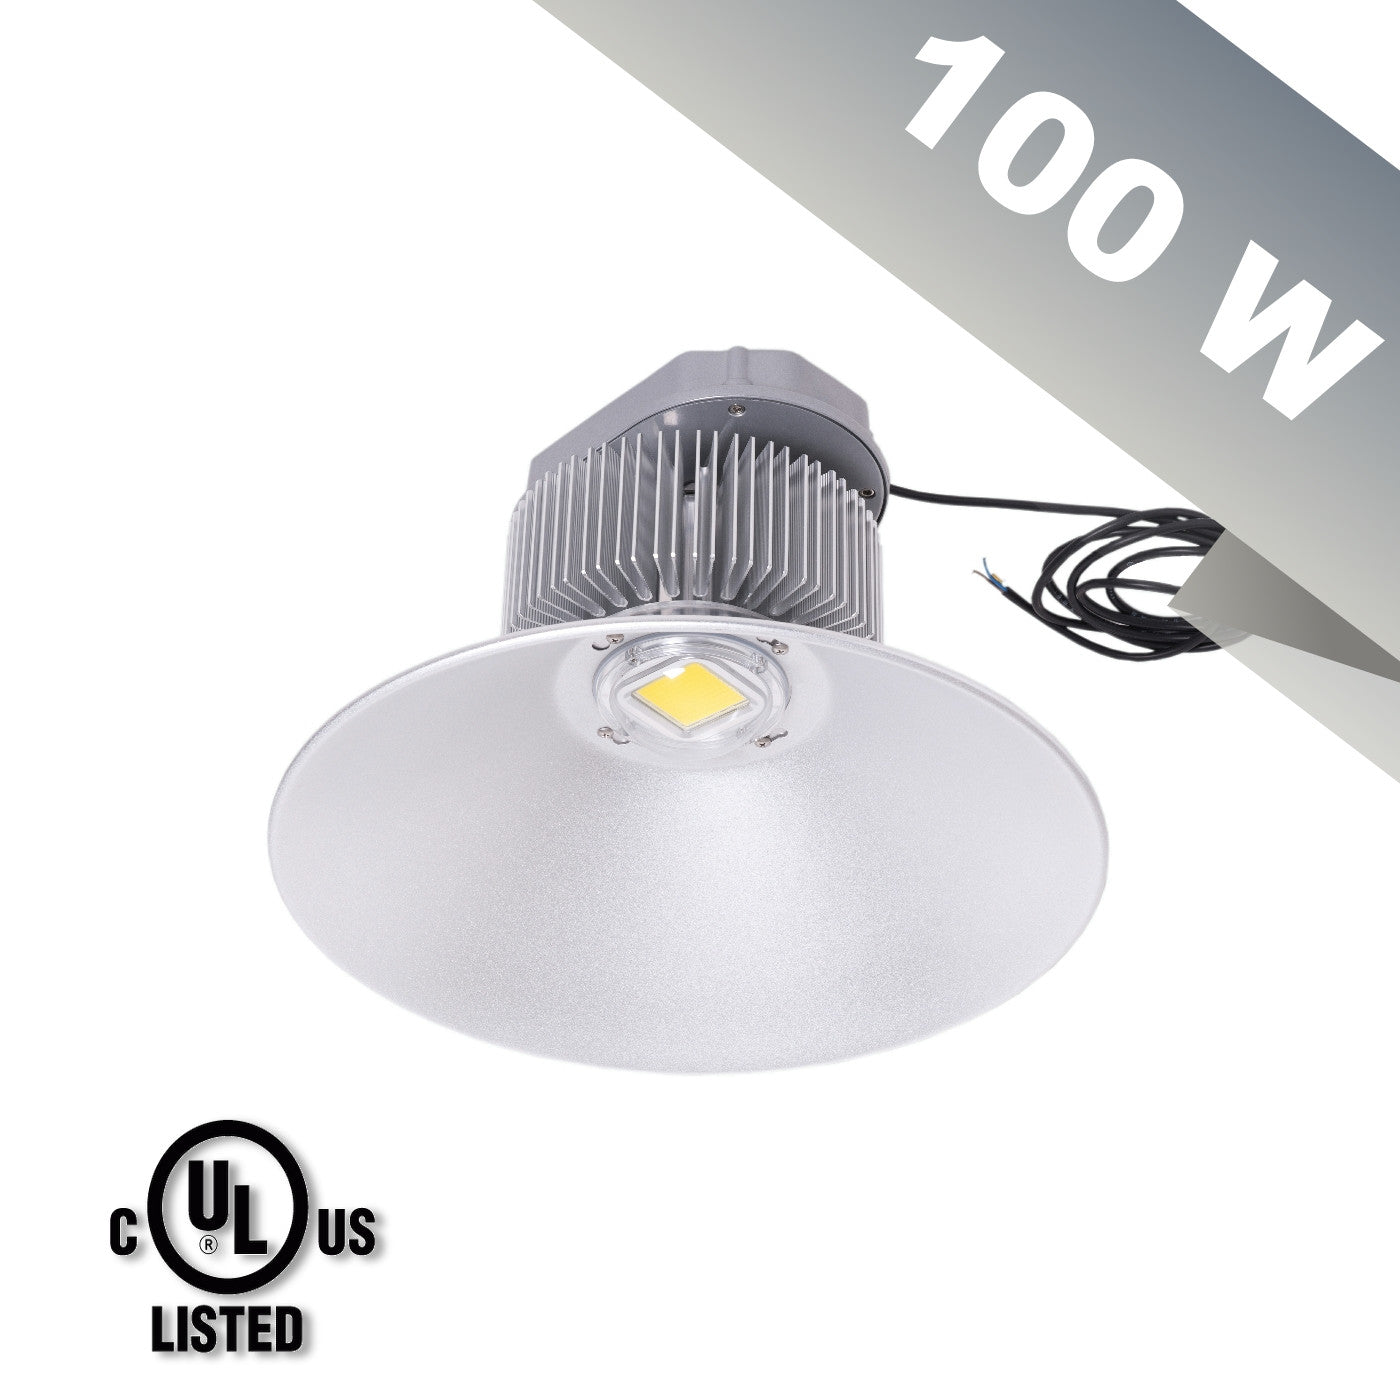 ru fixture factory ebay led white bay industry us en lamp lighting light buy bright bulb high